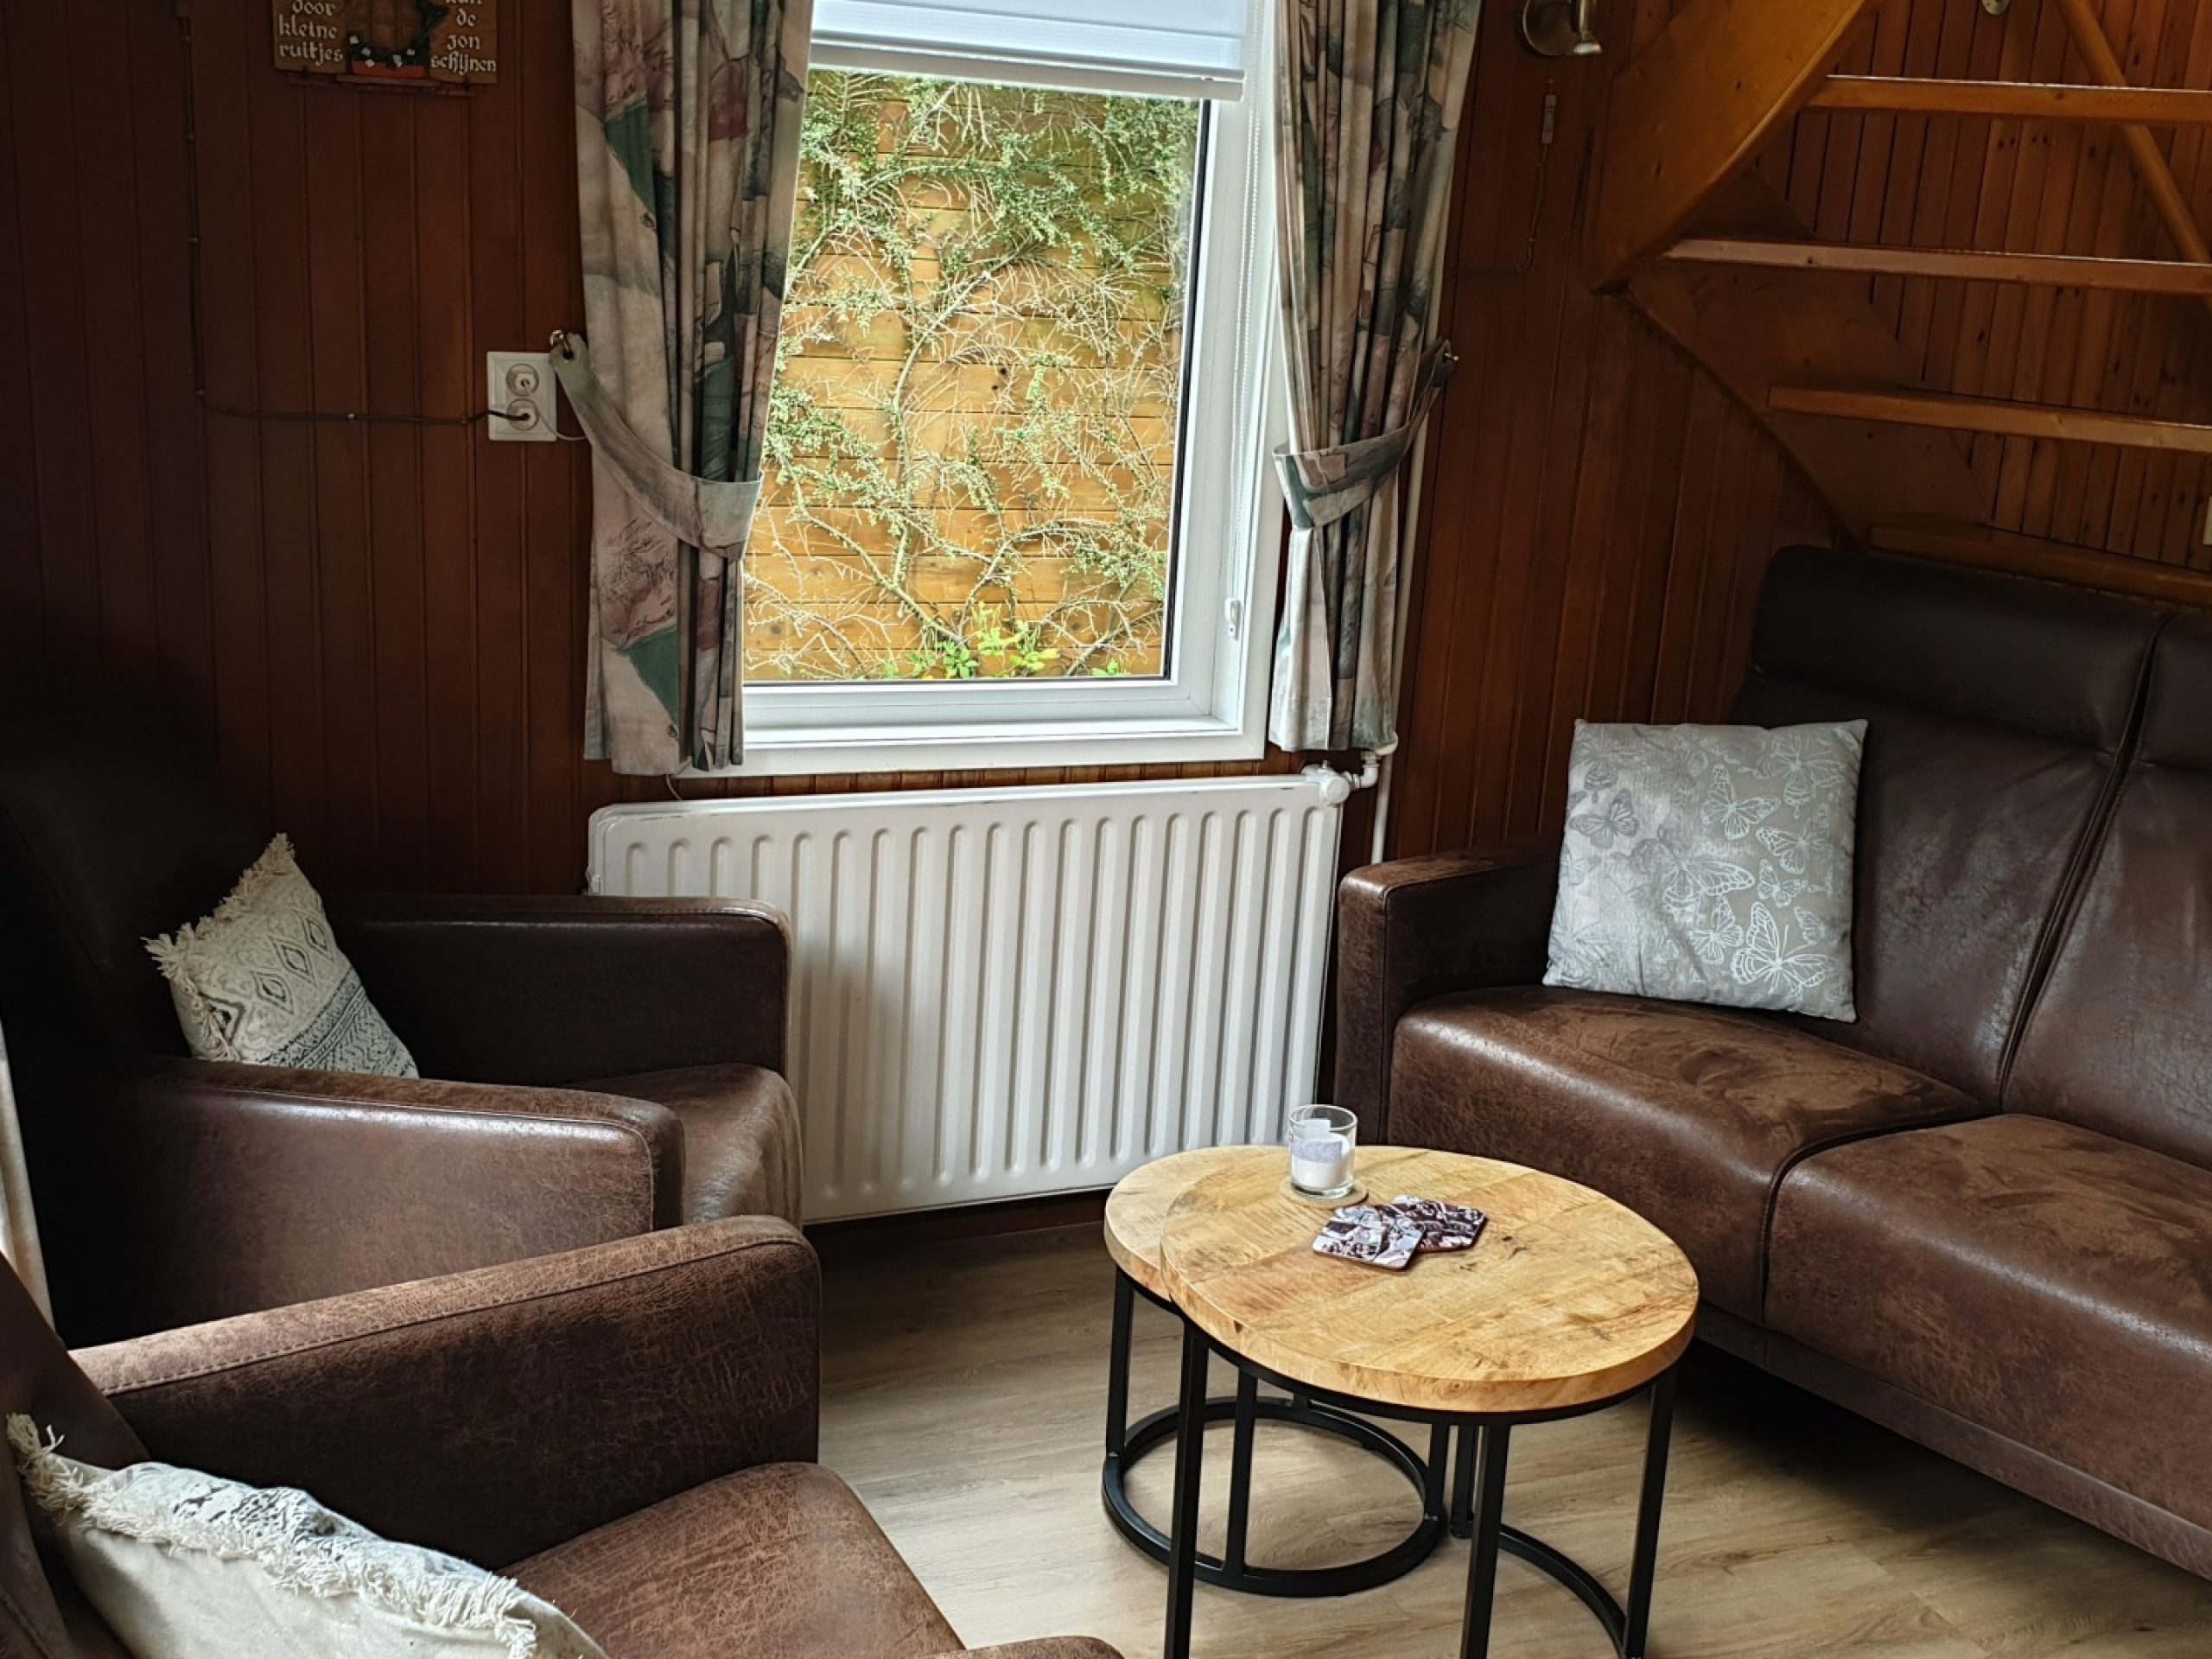 Cosy holiday home near nature reserves on the edge of De Koog